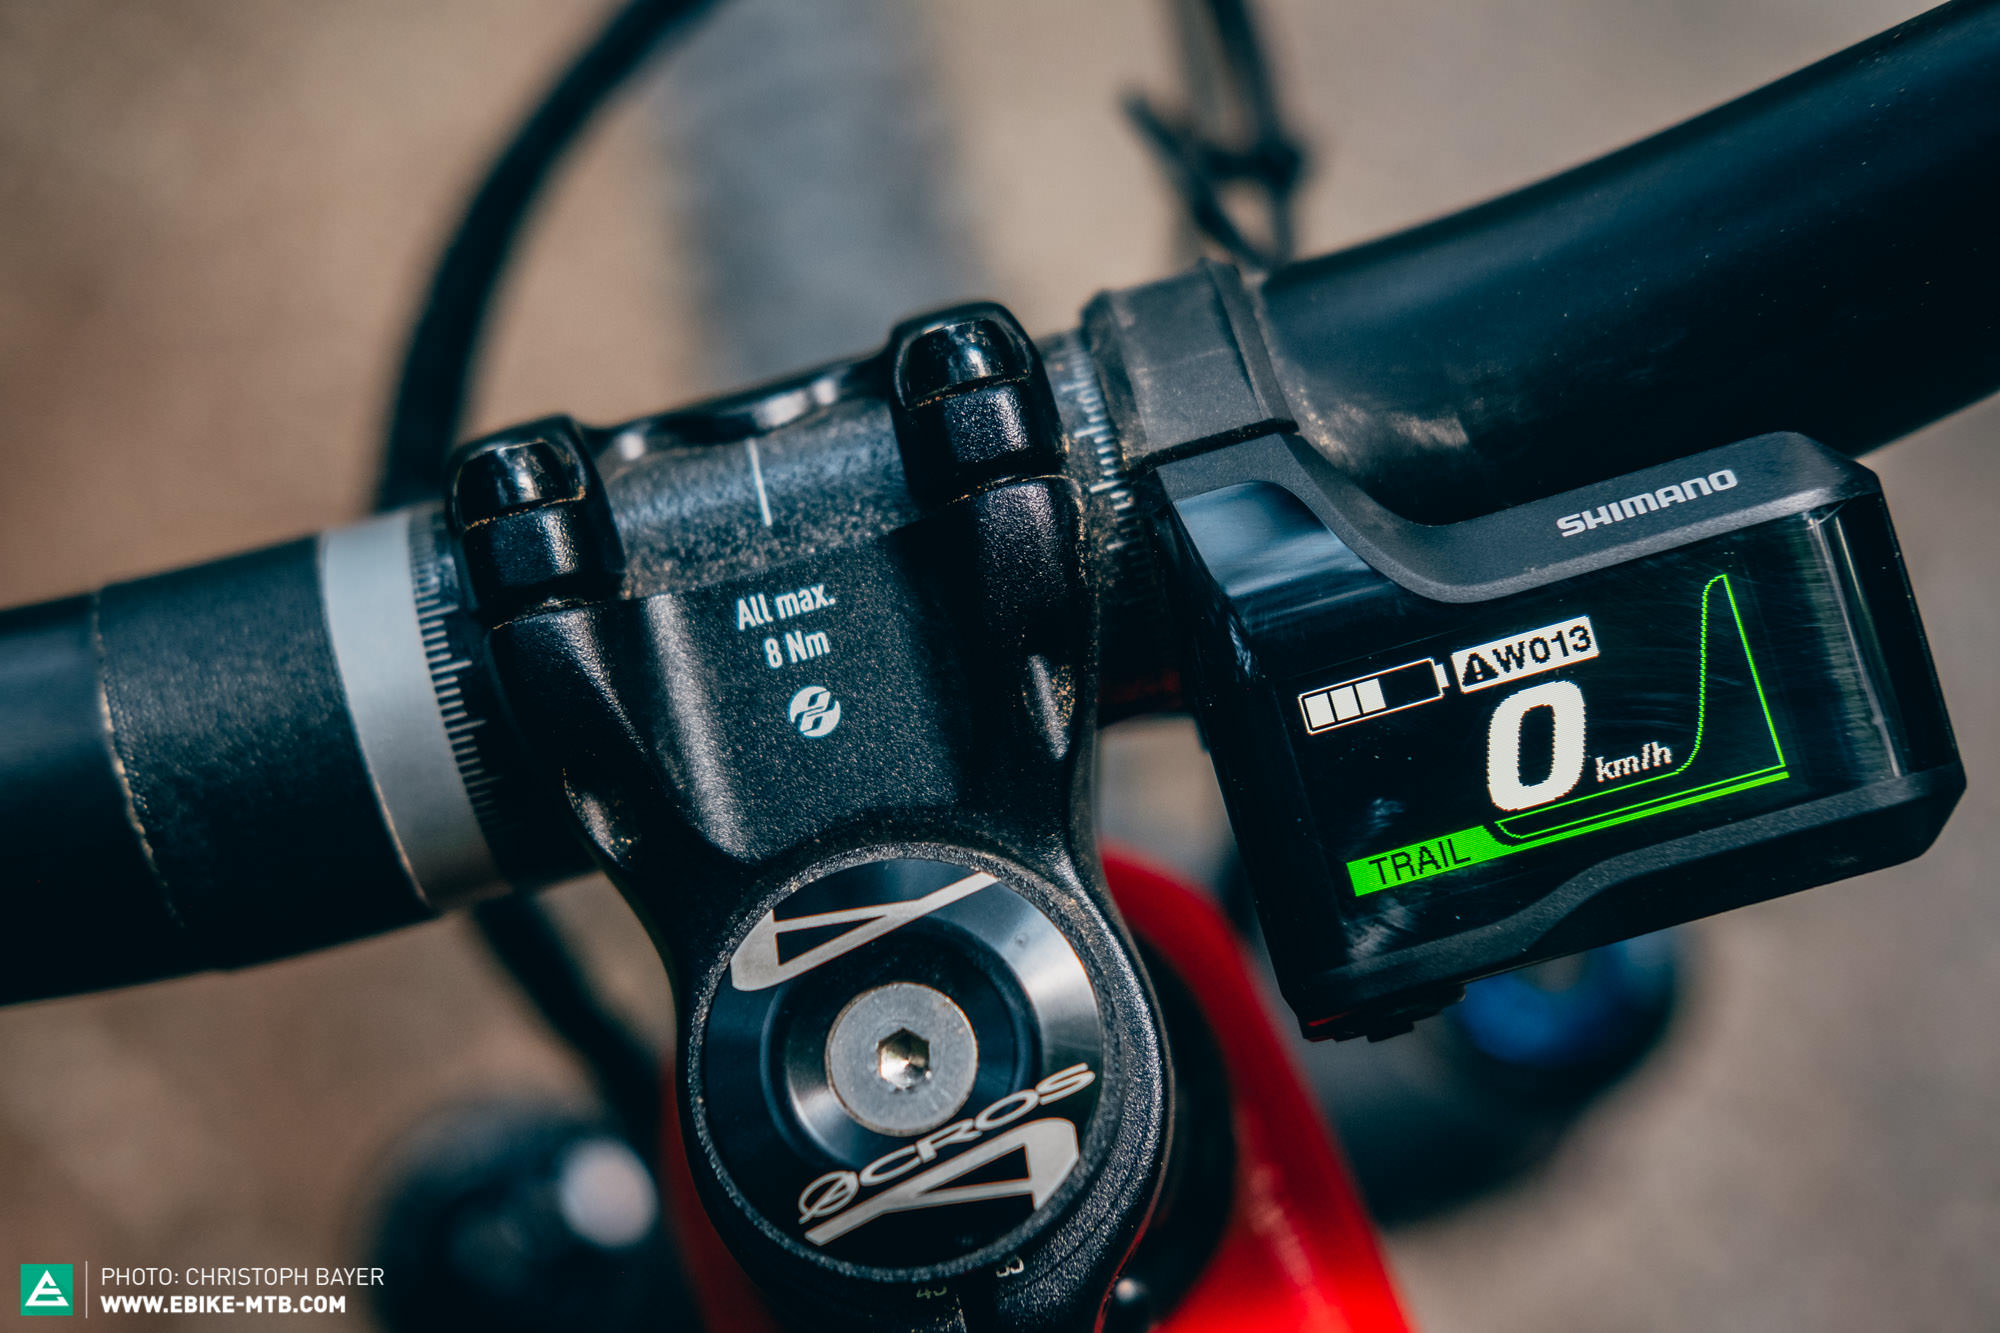 Ebike error codes and their solutions – Bosch 503, Shimano